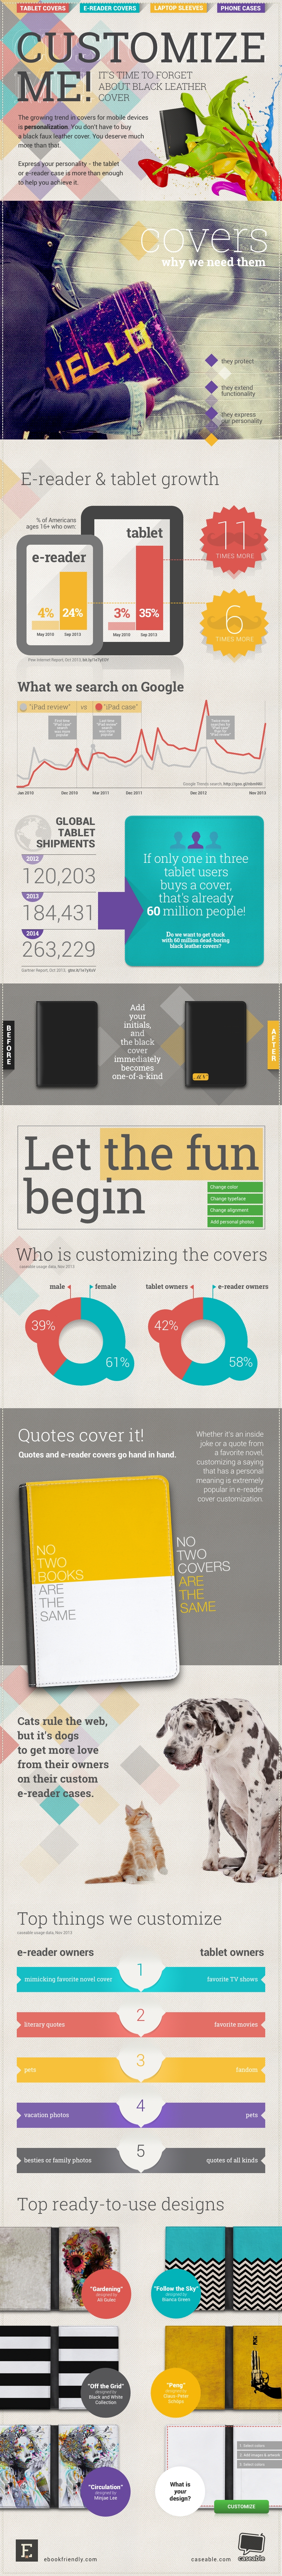 Custom cases are a new trend #infographic